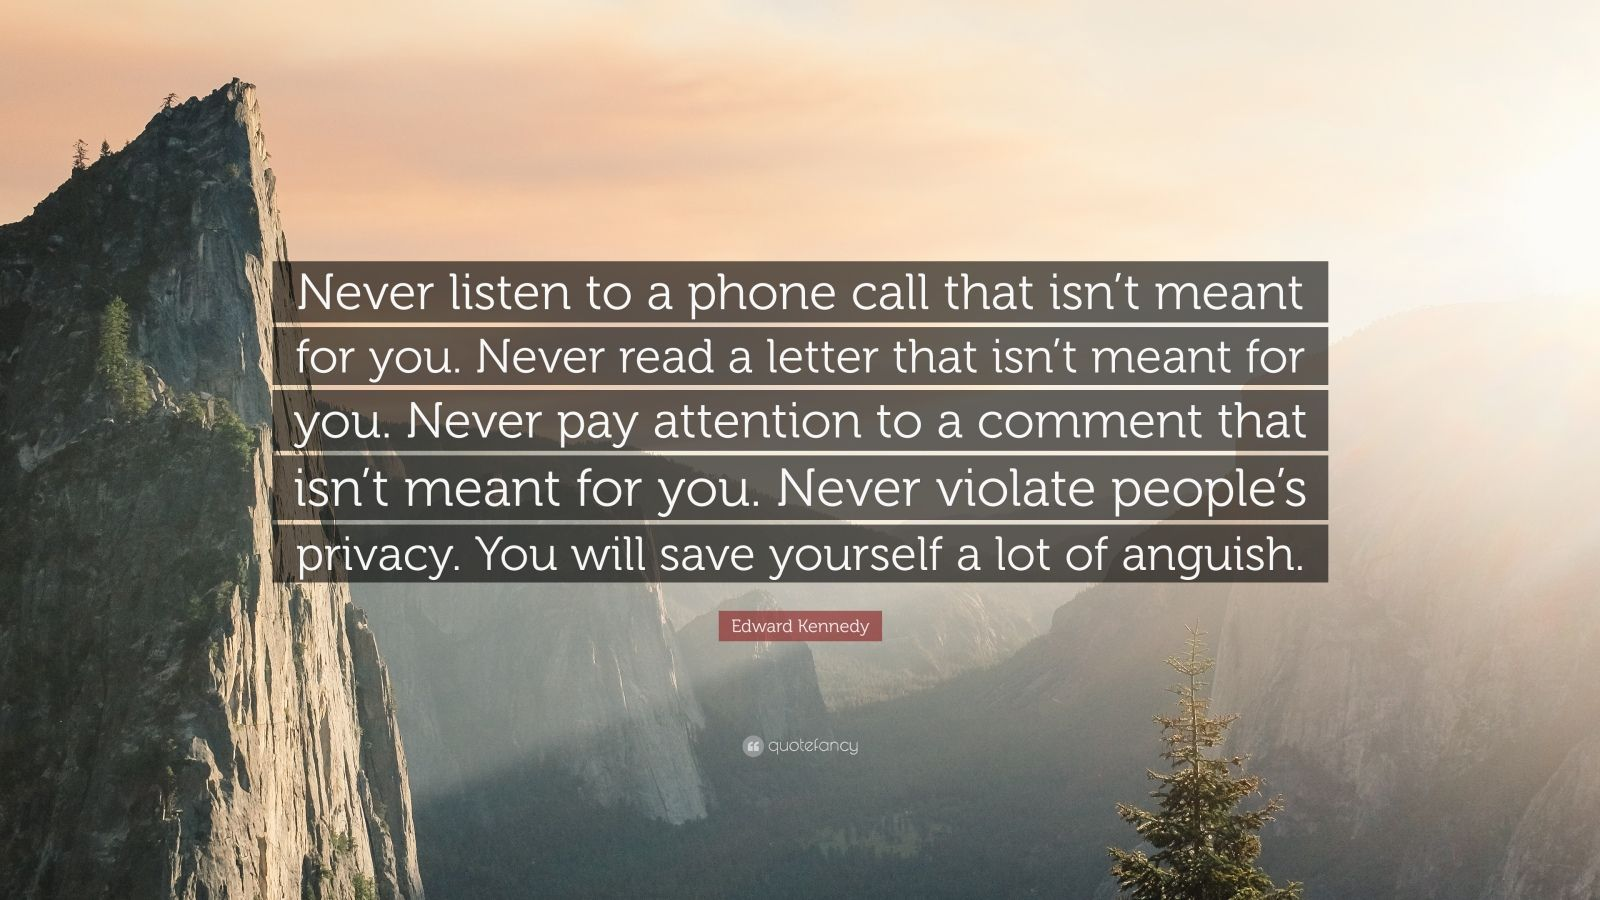 "Edward Kennedy Quote: ""Never listen to a phone call that isn't meant for you. Never read a letter that isn't meant for you. Never pay attention to a comment that isn't meant for you. Never violate people's privacy. You will save yourself a lot of anguish."""